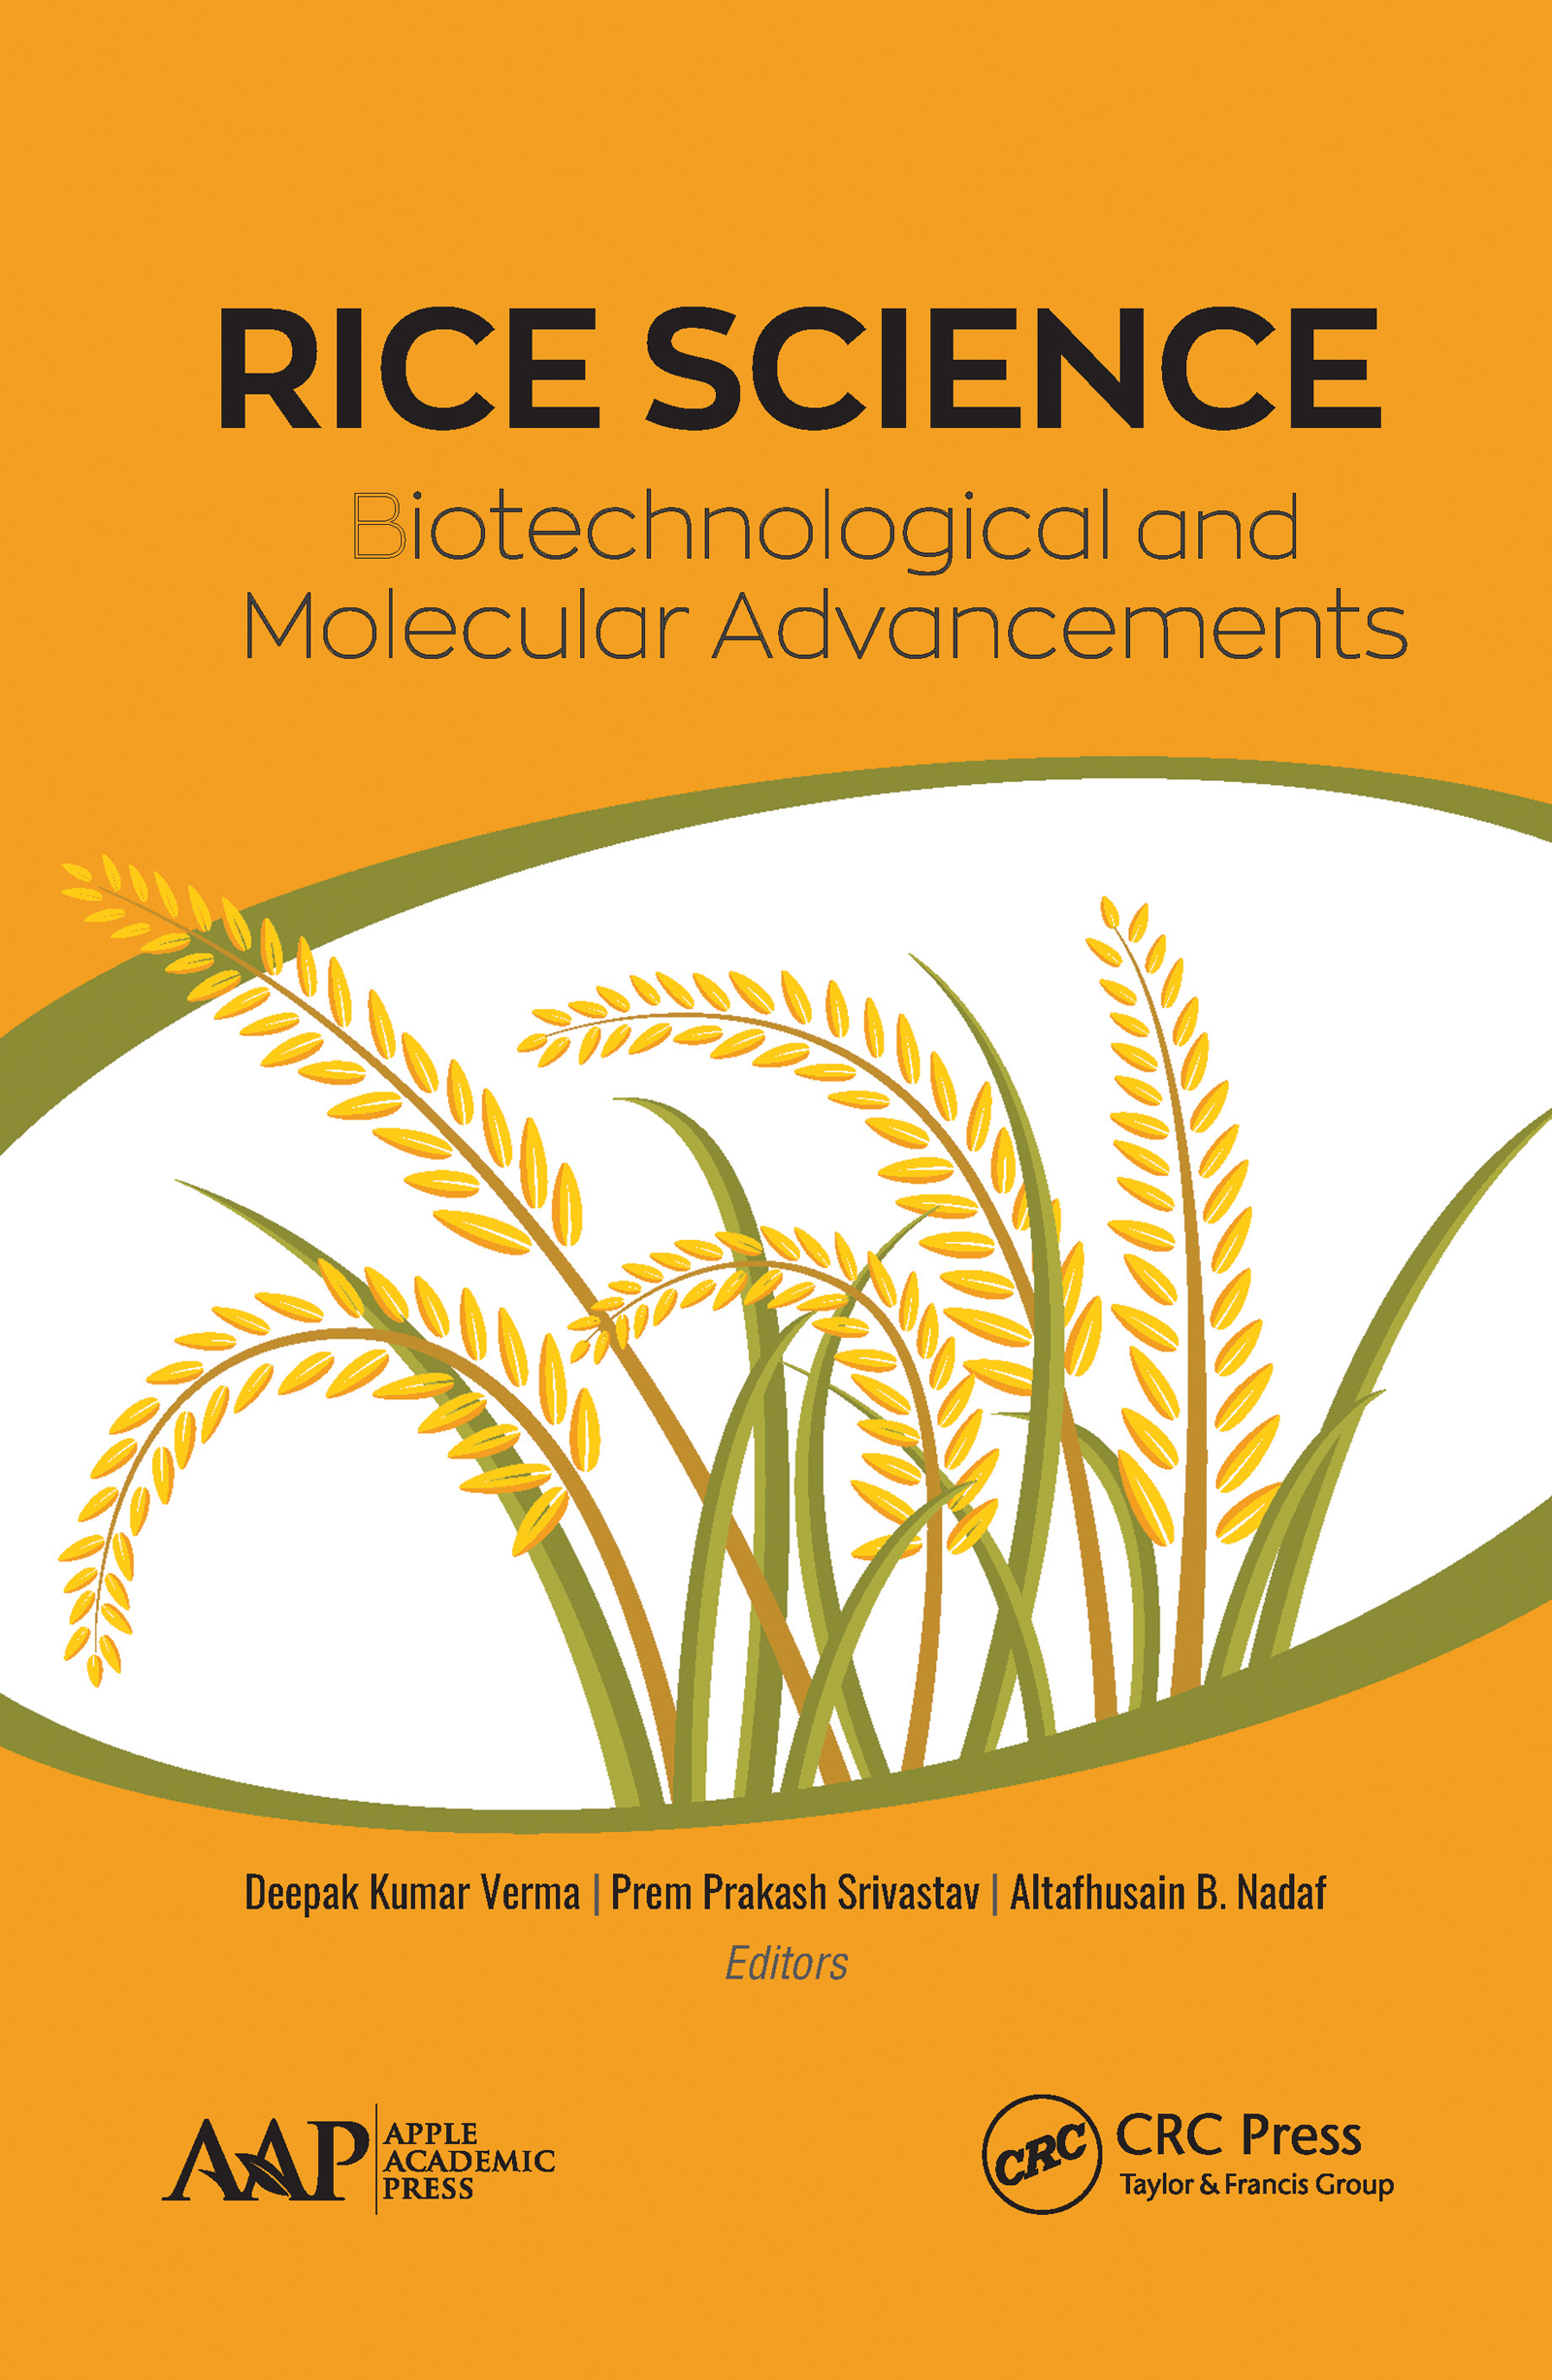 Rice Science: Biotechnological and Molecular Advancements